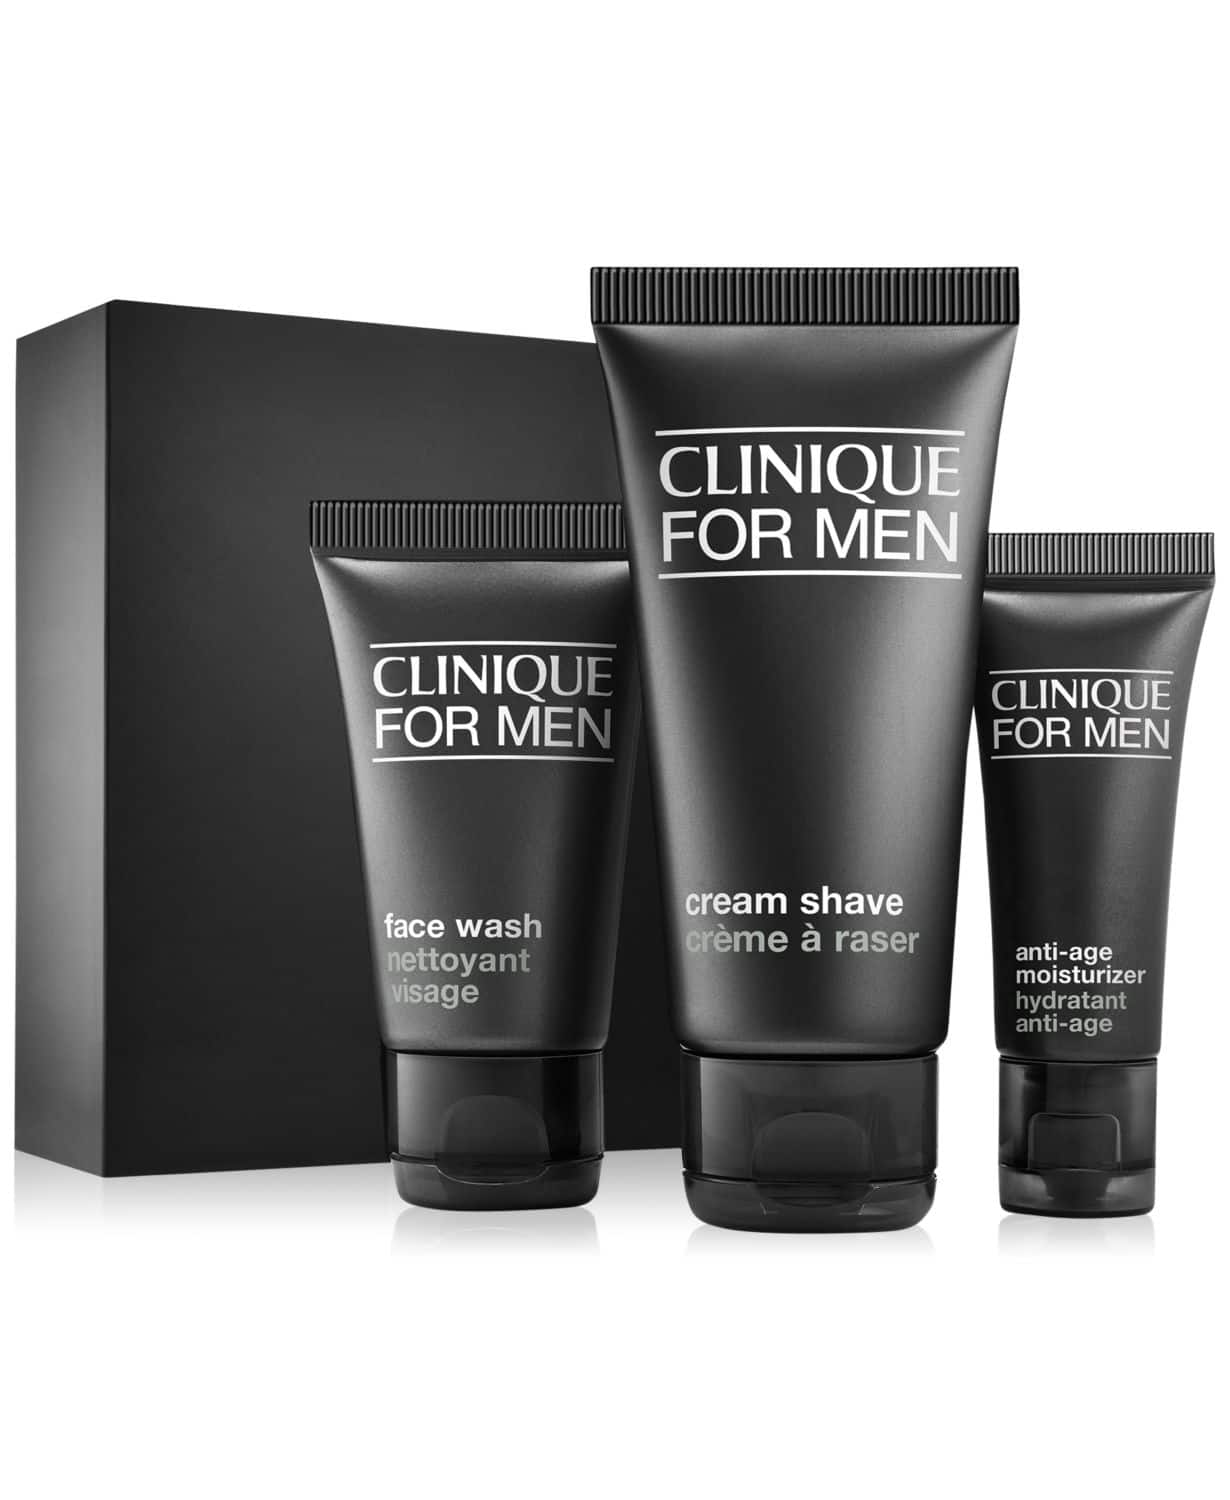 3-Pc. Clinique For Men Daily Age Repair Starter Set - $12.33